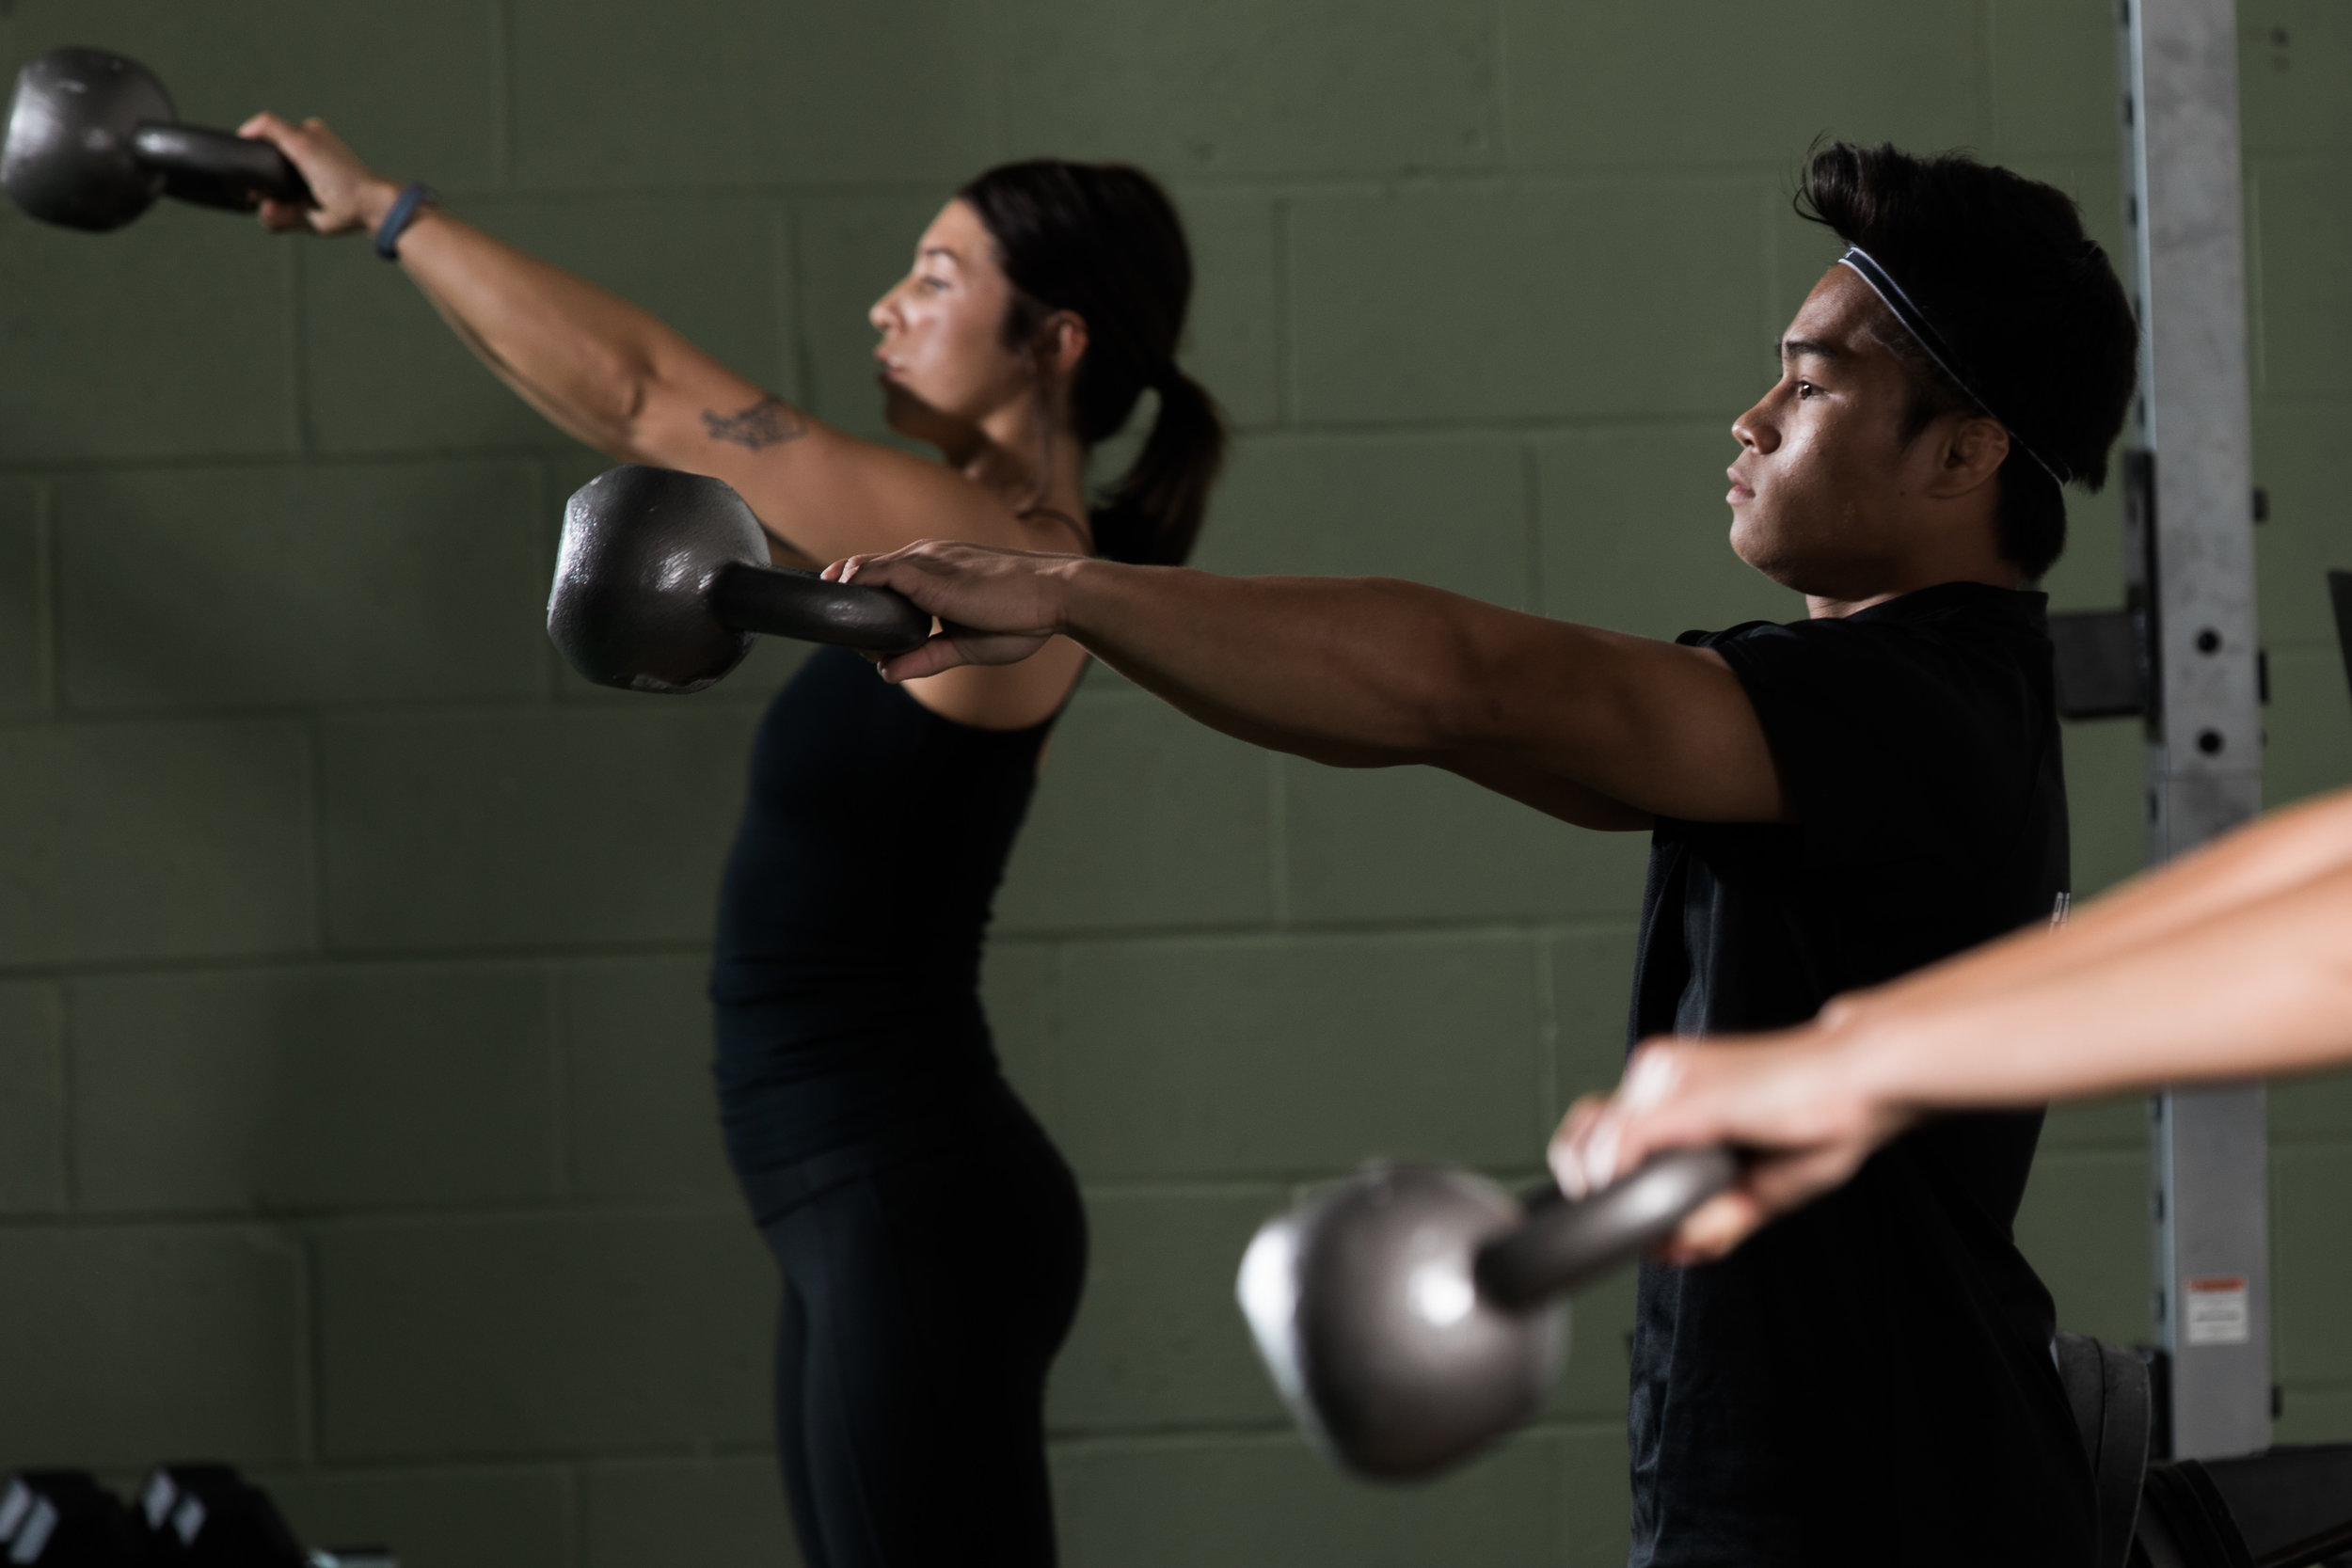 PRIVATE GROUP TRAINING - 3 MONTH PROGRAM   3 Month Contractual Commitment  Features: 3 Classes per Week, Access to App Reservation, Fitmetrix Heart Rate Tracking, 1 Complimentary Personal Training Session (30 Minutes), 1 Complimentary Nutrition Coaching Session (30 Minutes)